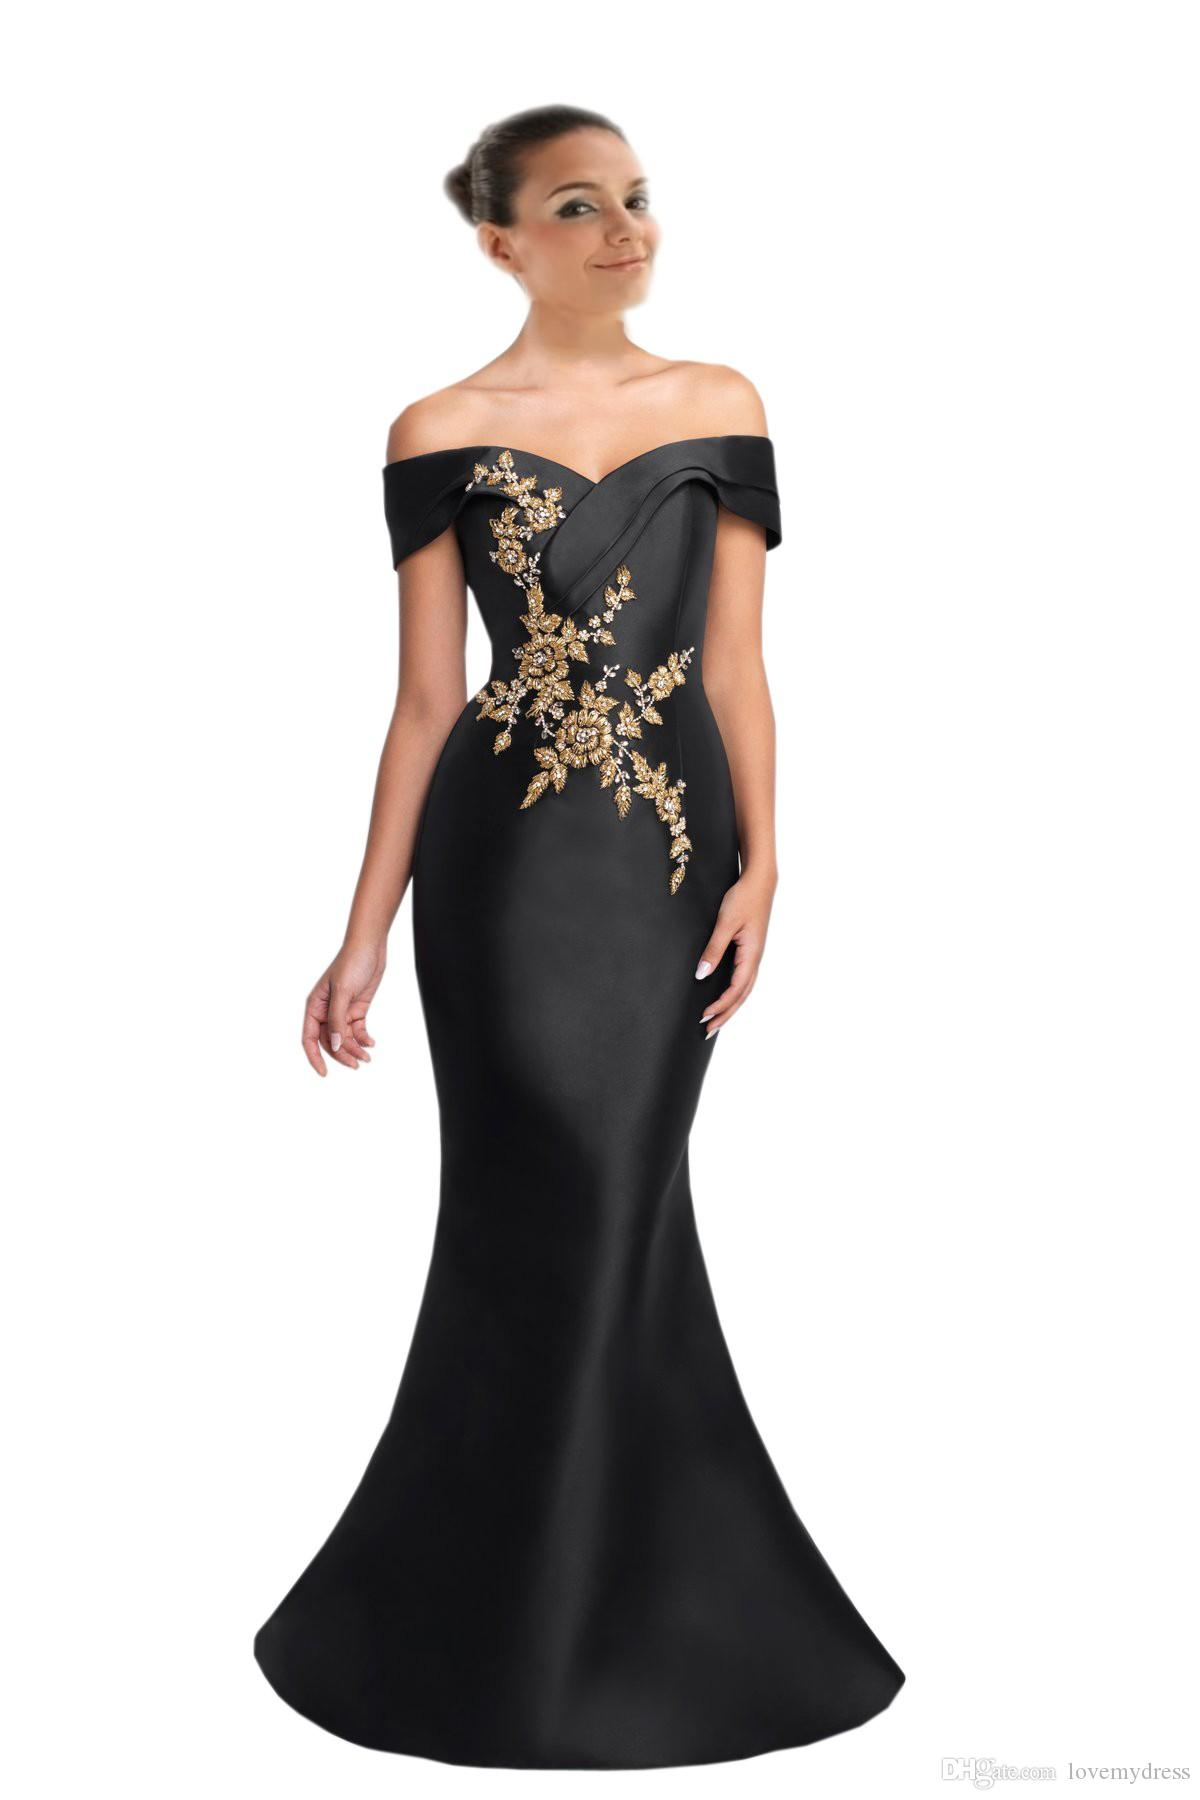 Gold Embellished Black Mermaid Prom Dresses 2019 V neck off the shoulder Satin Beads With Short Sleeves Pageant Evening Party Dress